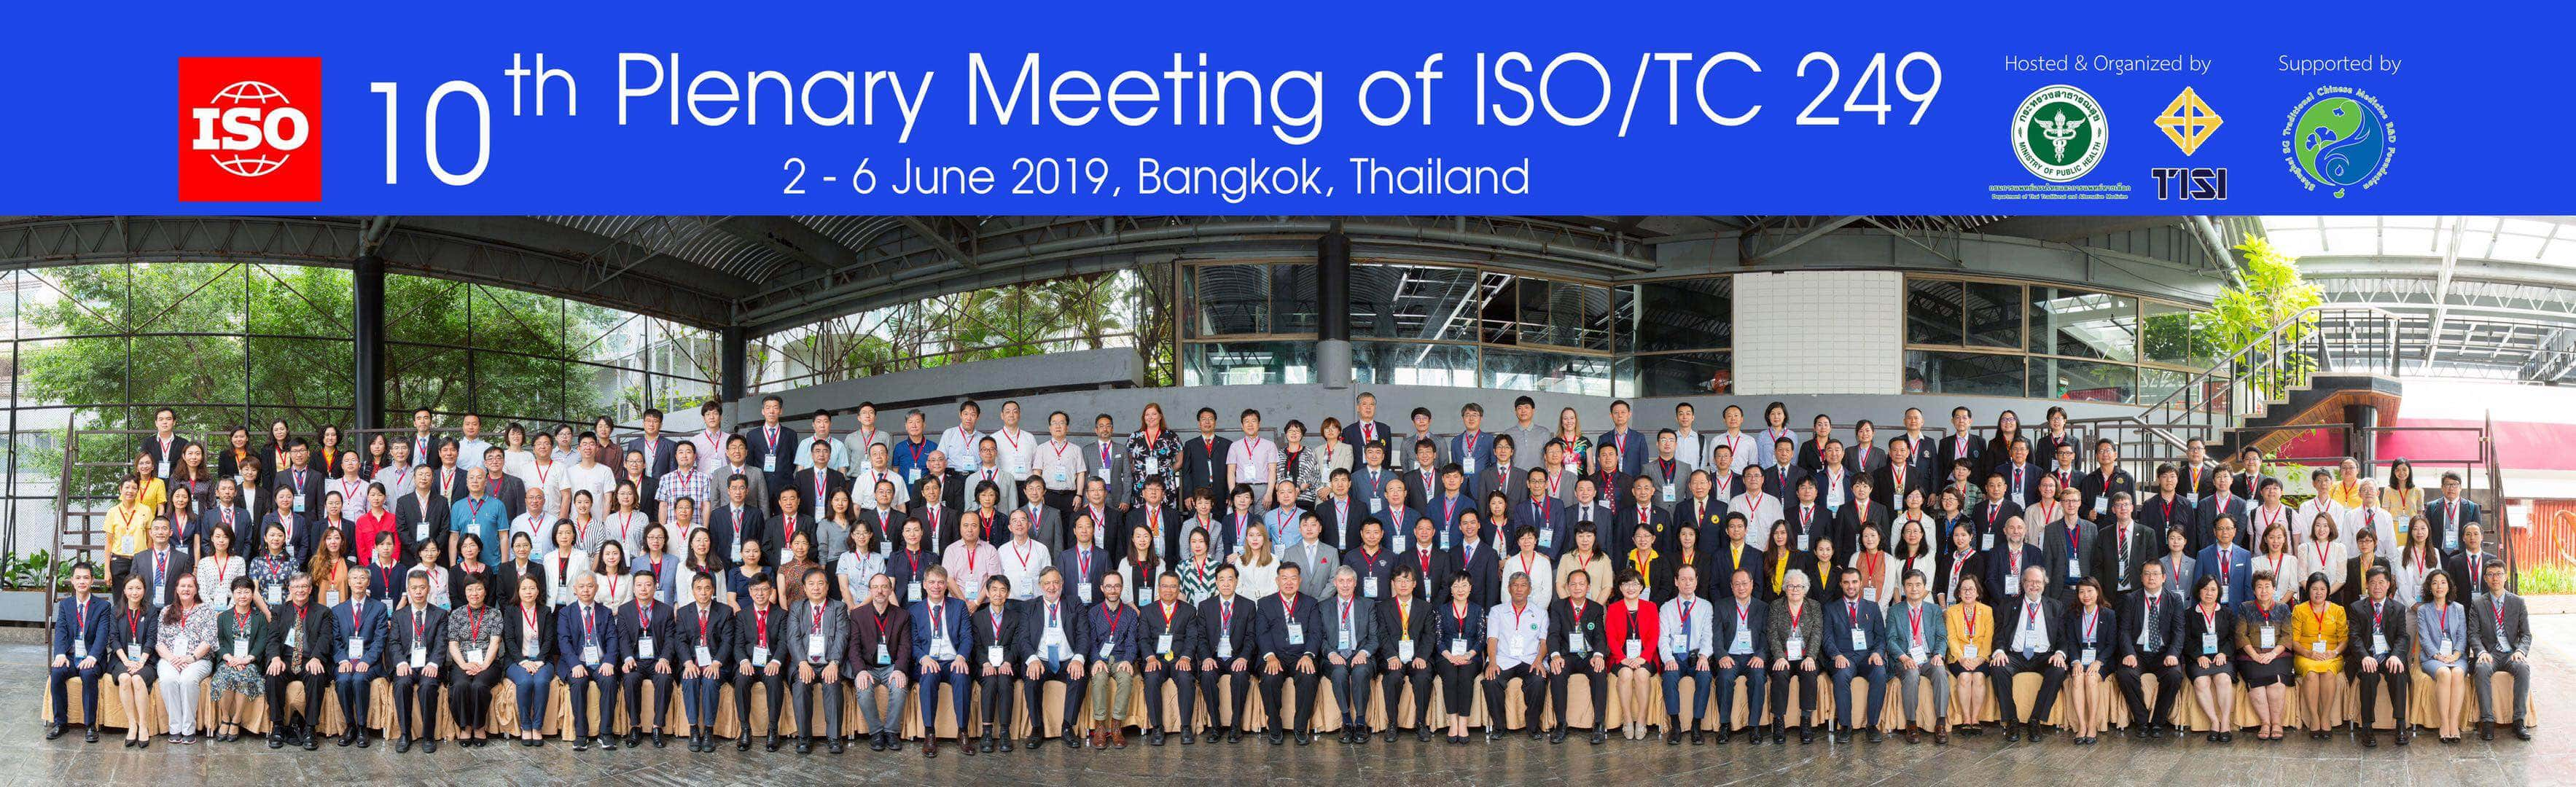 ISO TC249 2019 entire group with title